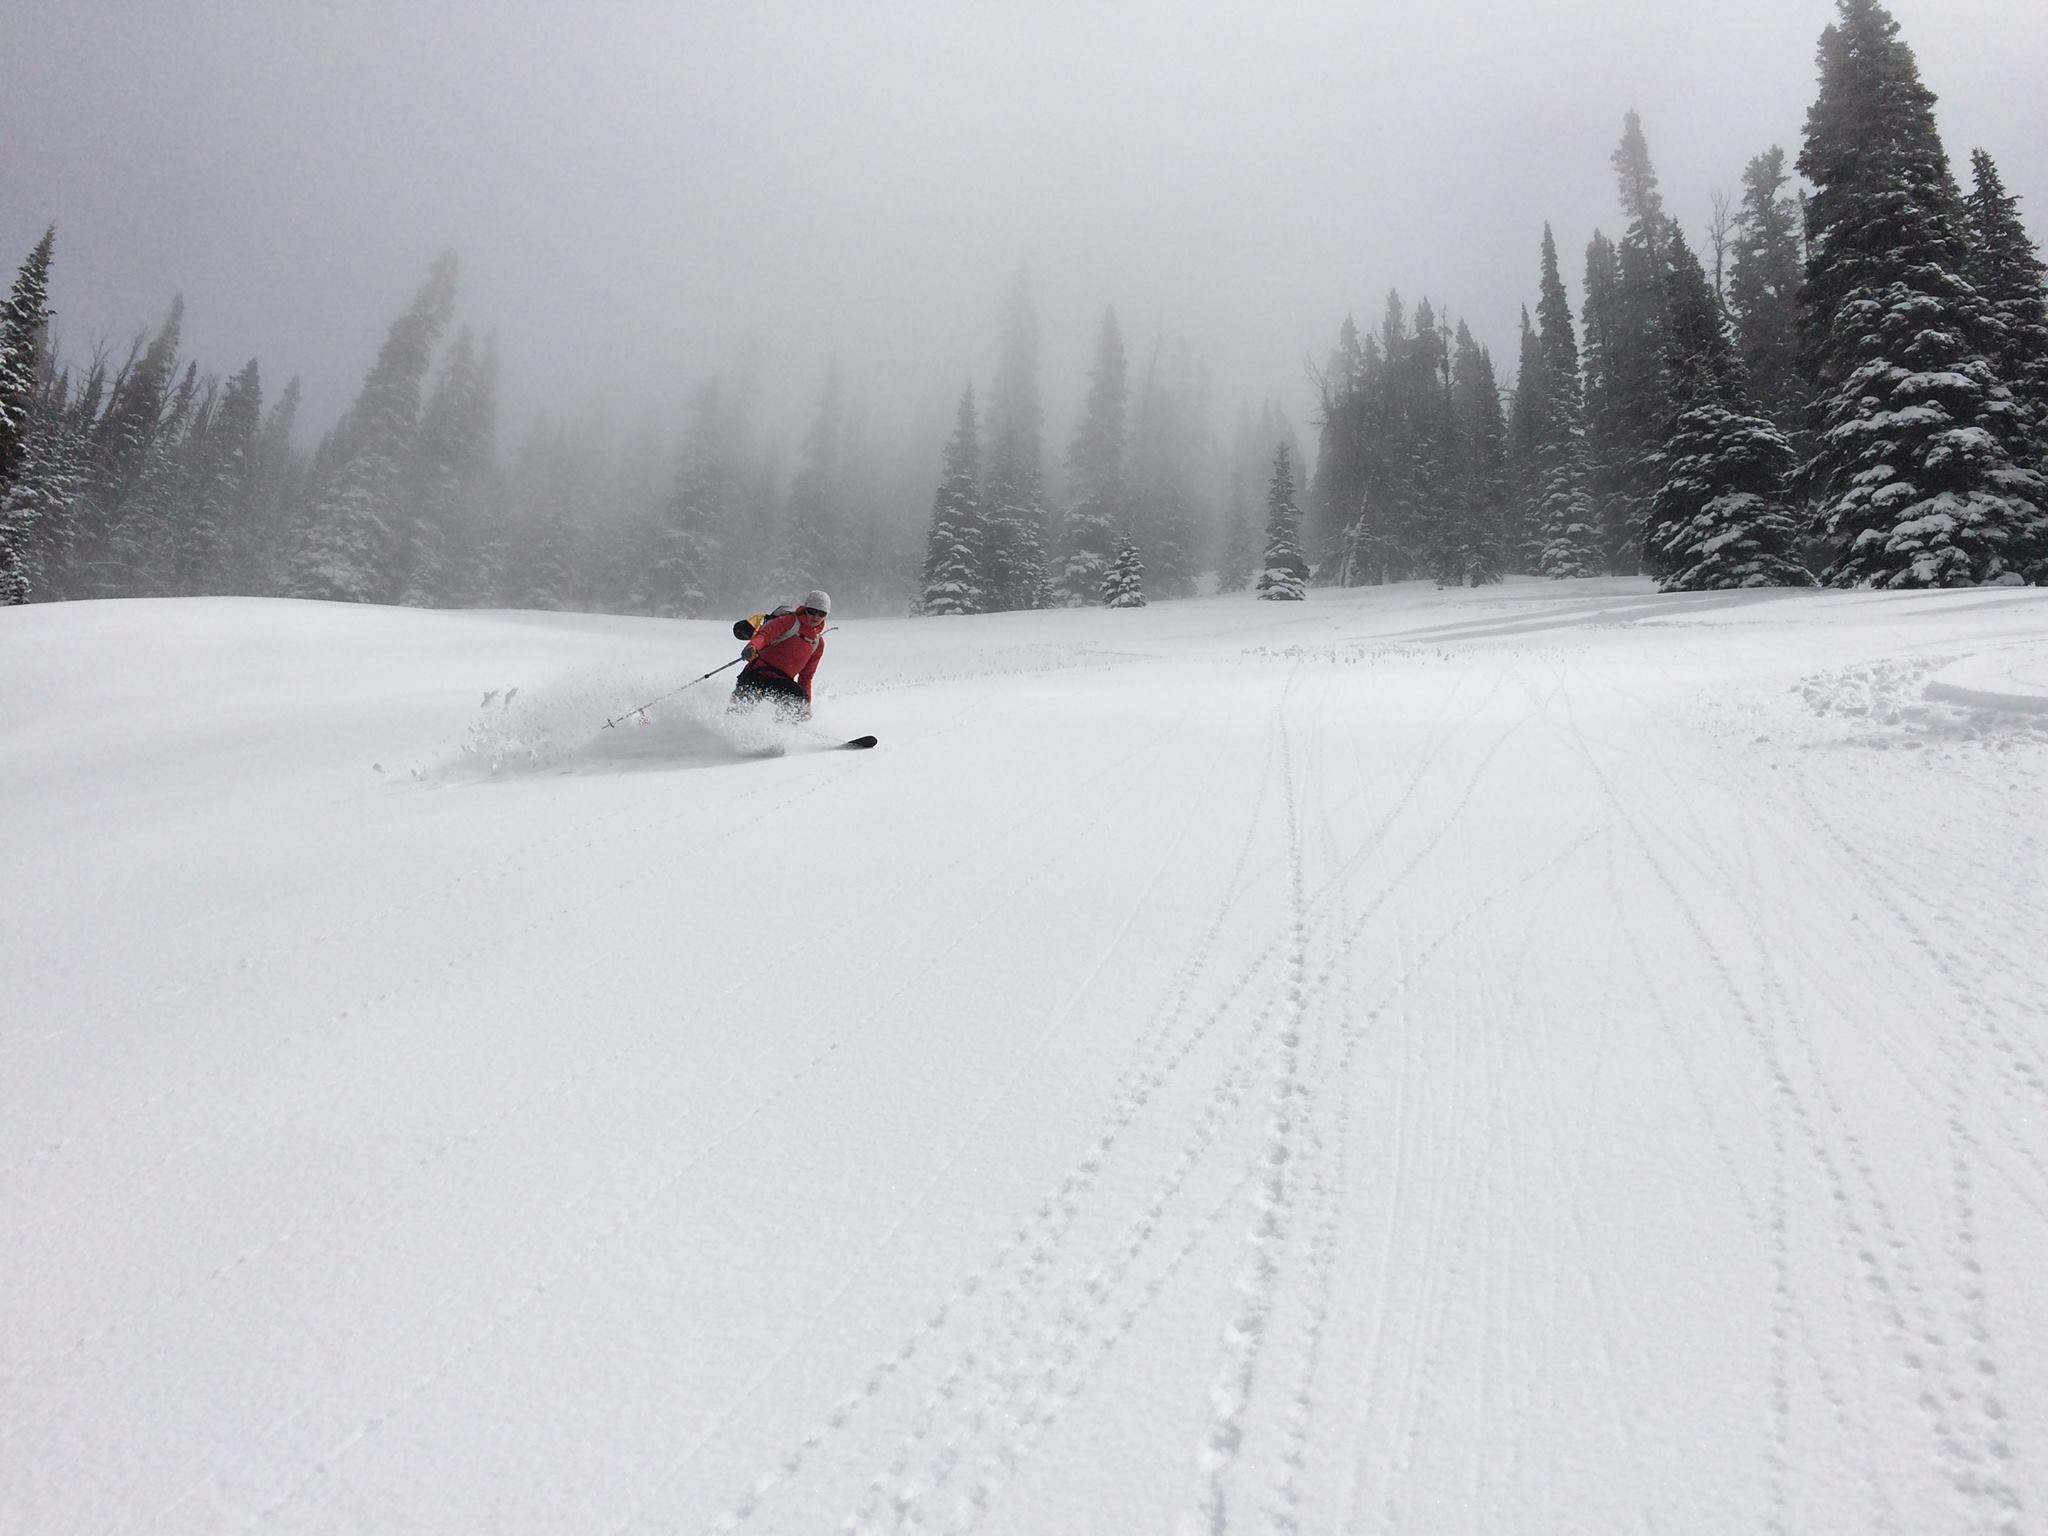 Lizzie skiing in the backcountry.